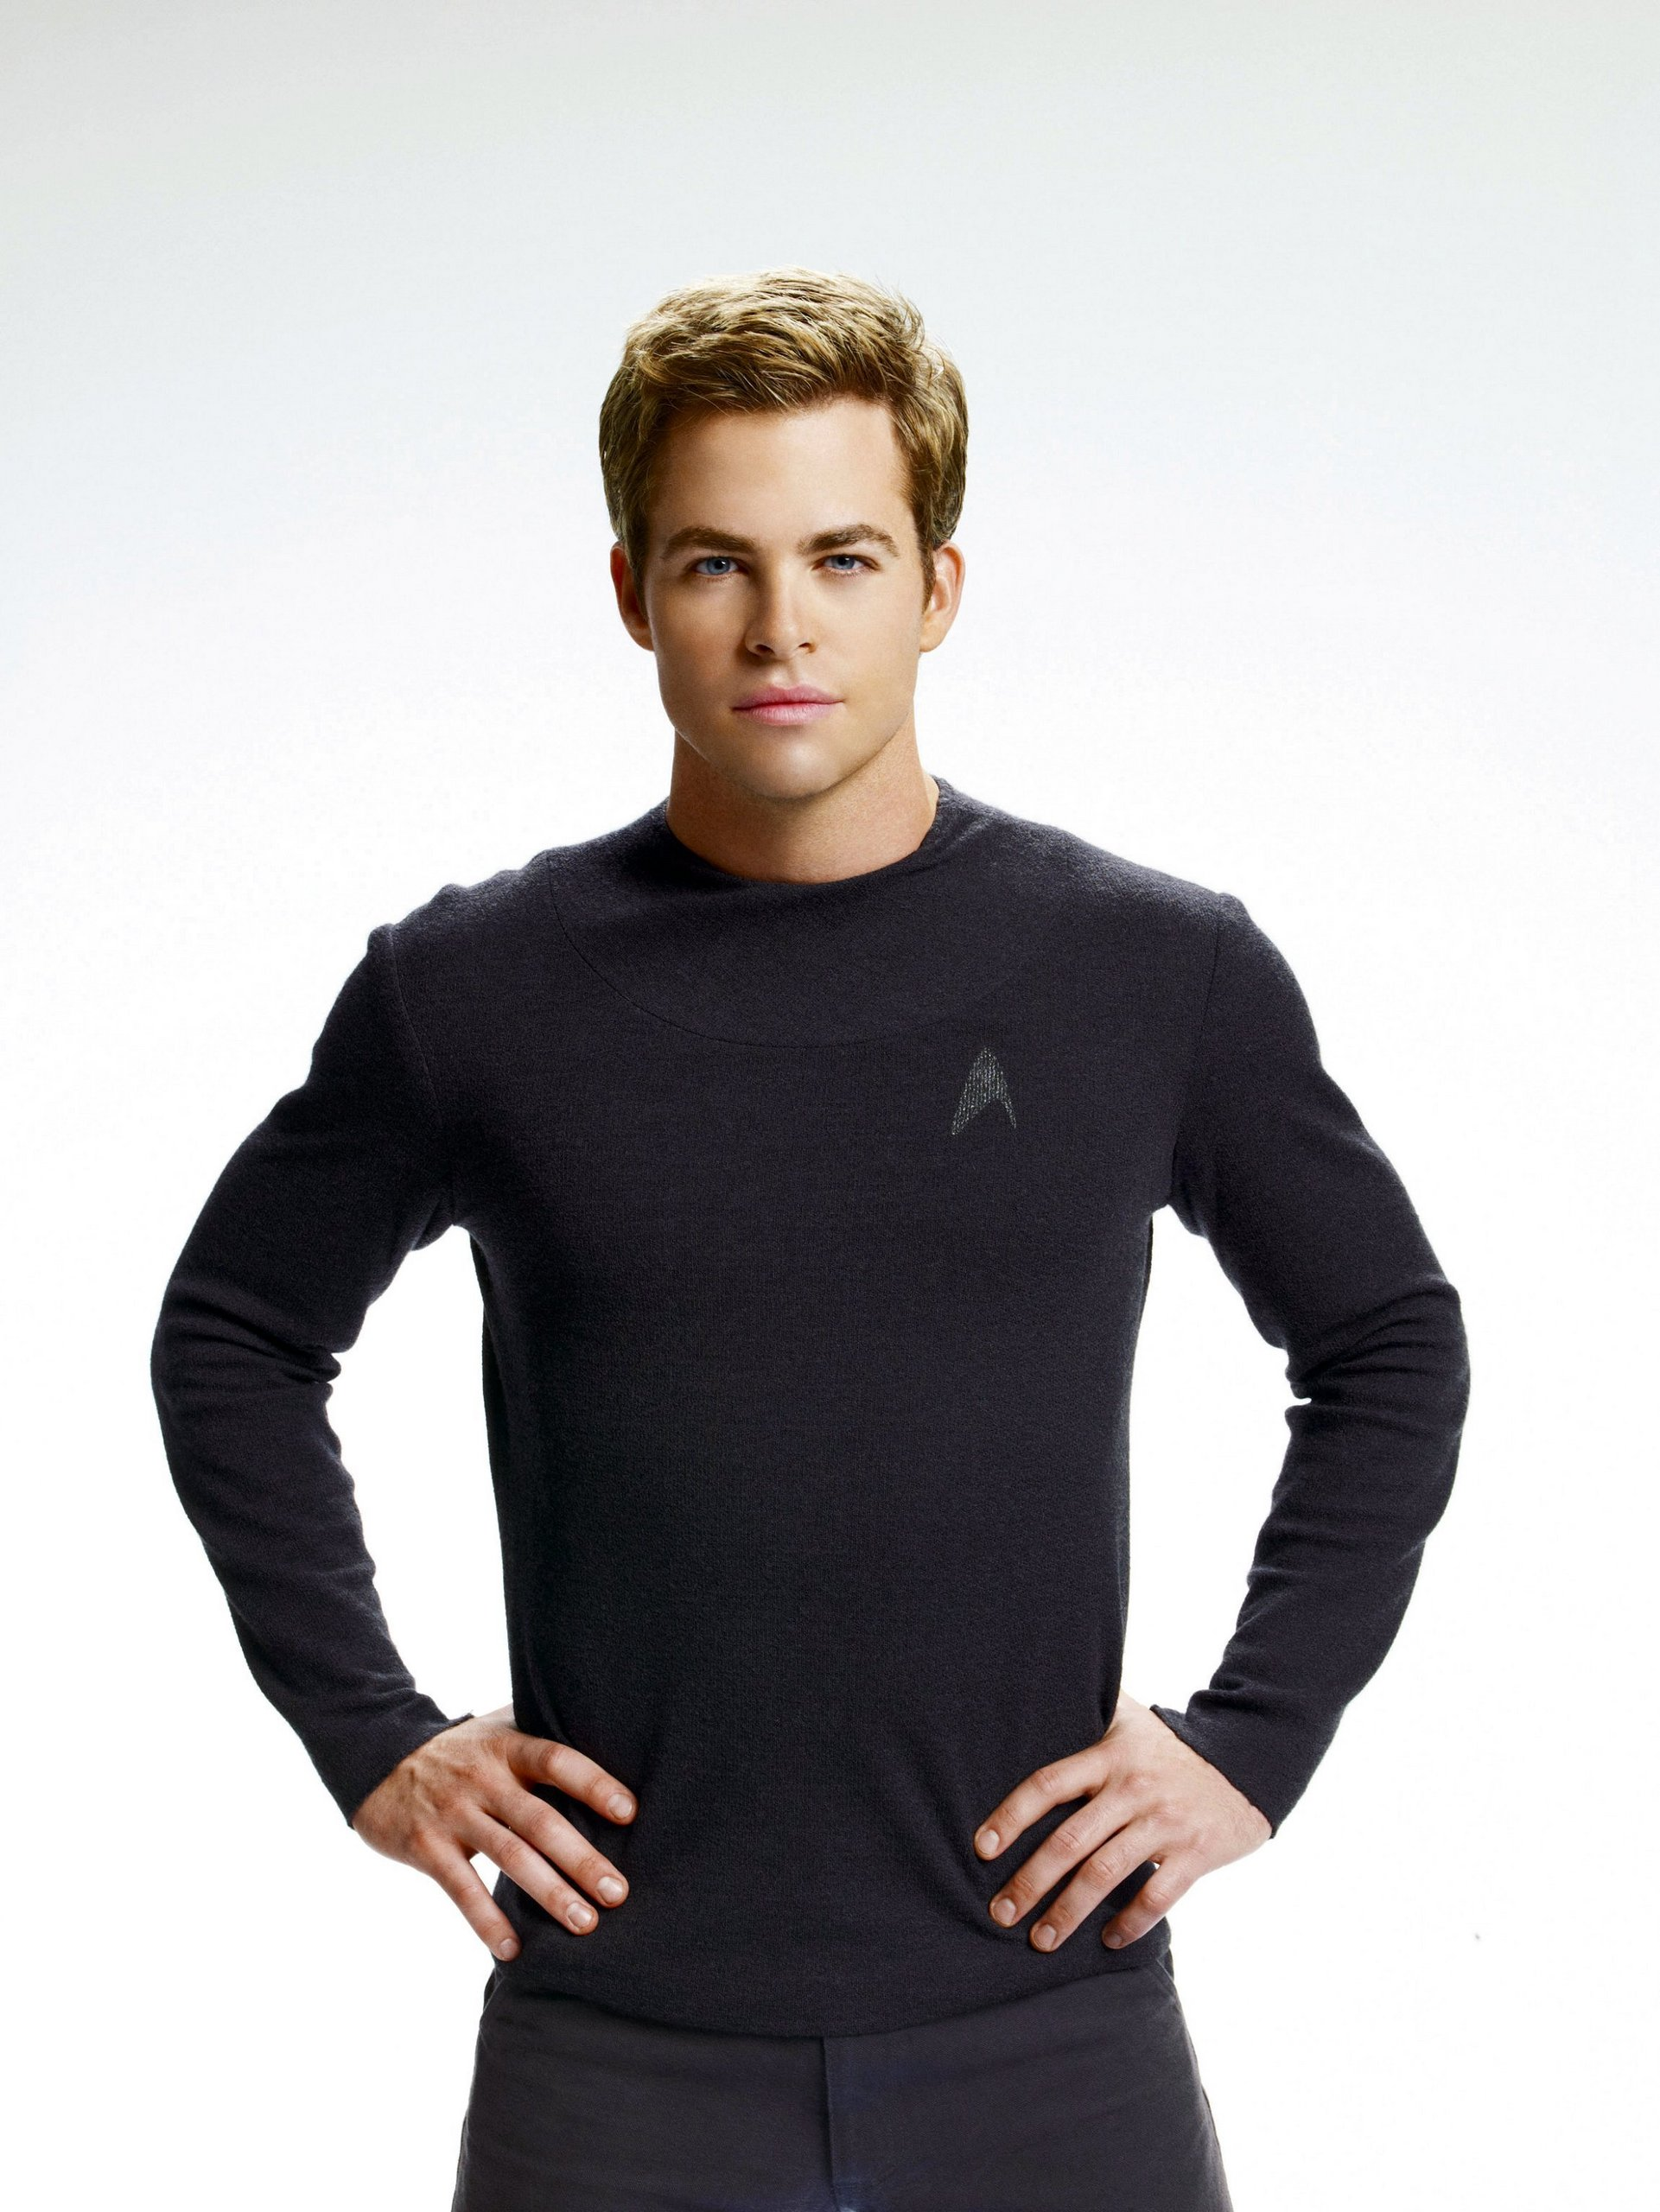 Chris Pine - Photos